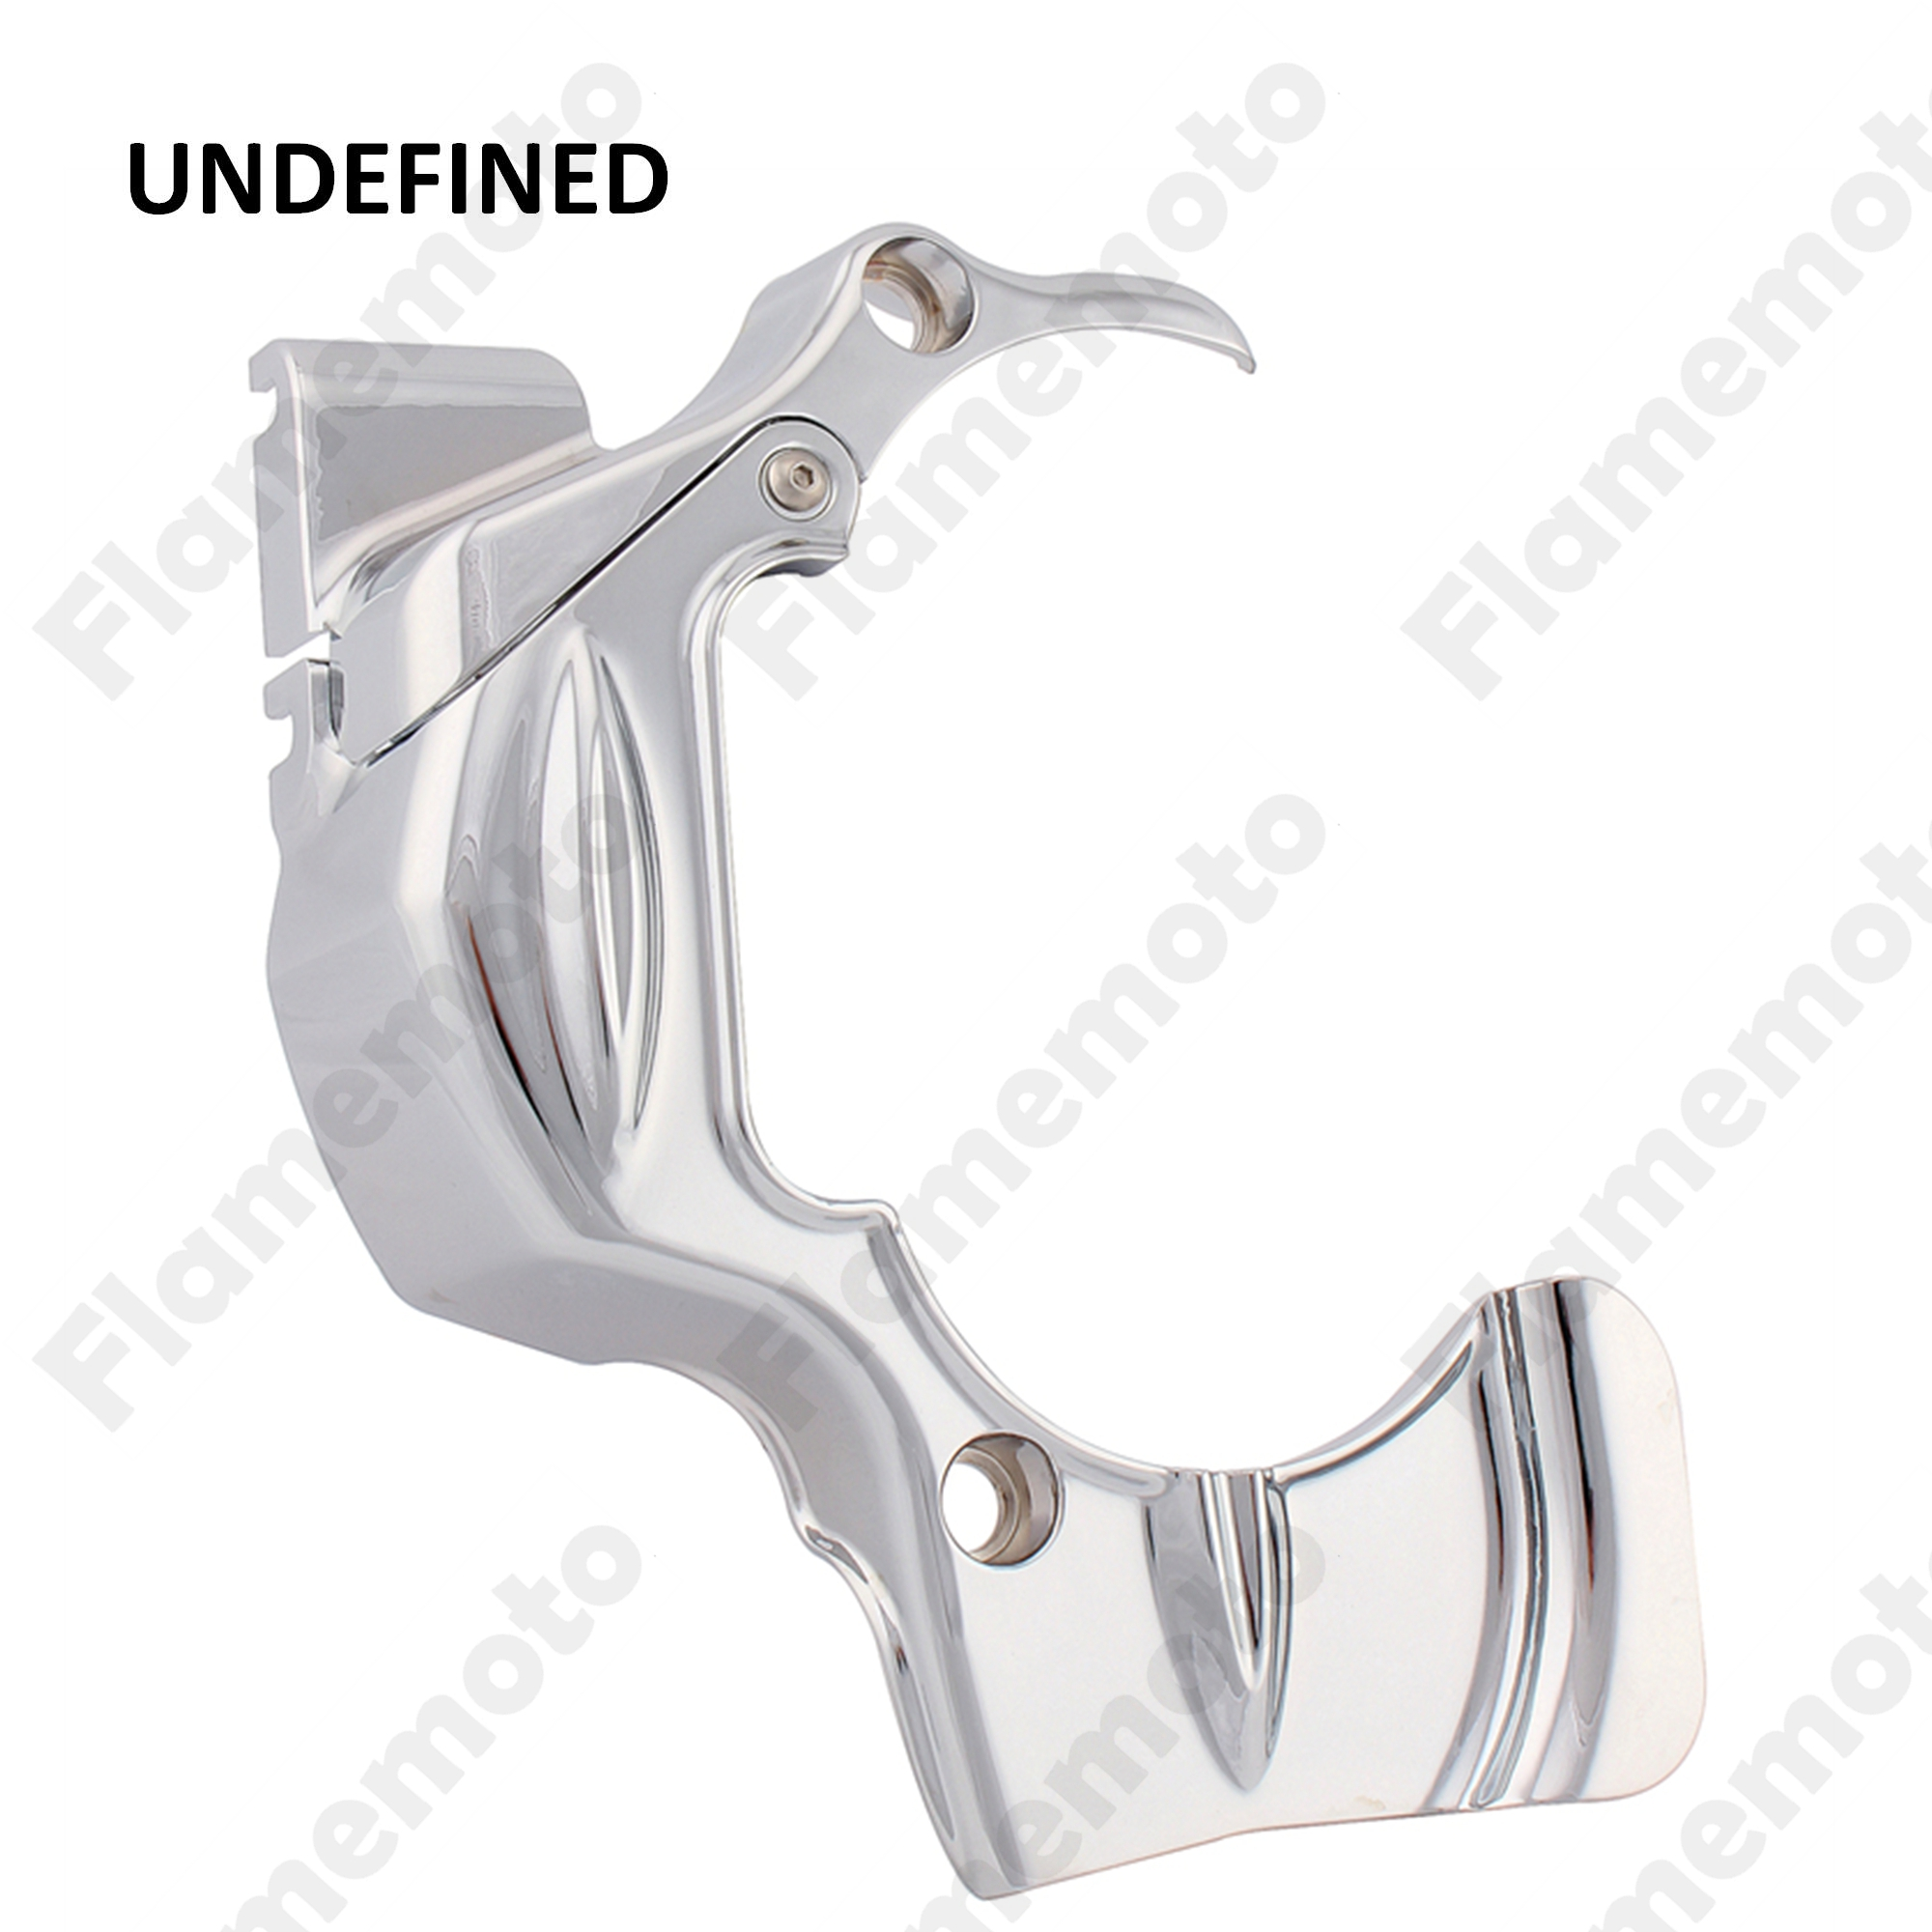 Motorcycle Transmission Shroud Cover Trim For Harley Touring CVO FLHT FLHX FLHR 2009 2010 2011 2012 2013-2016 Chrome UNDEFINED купить